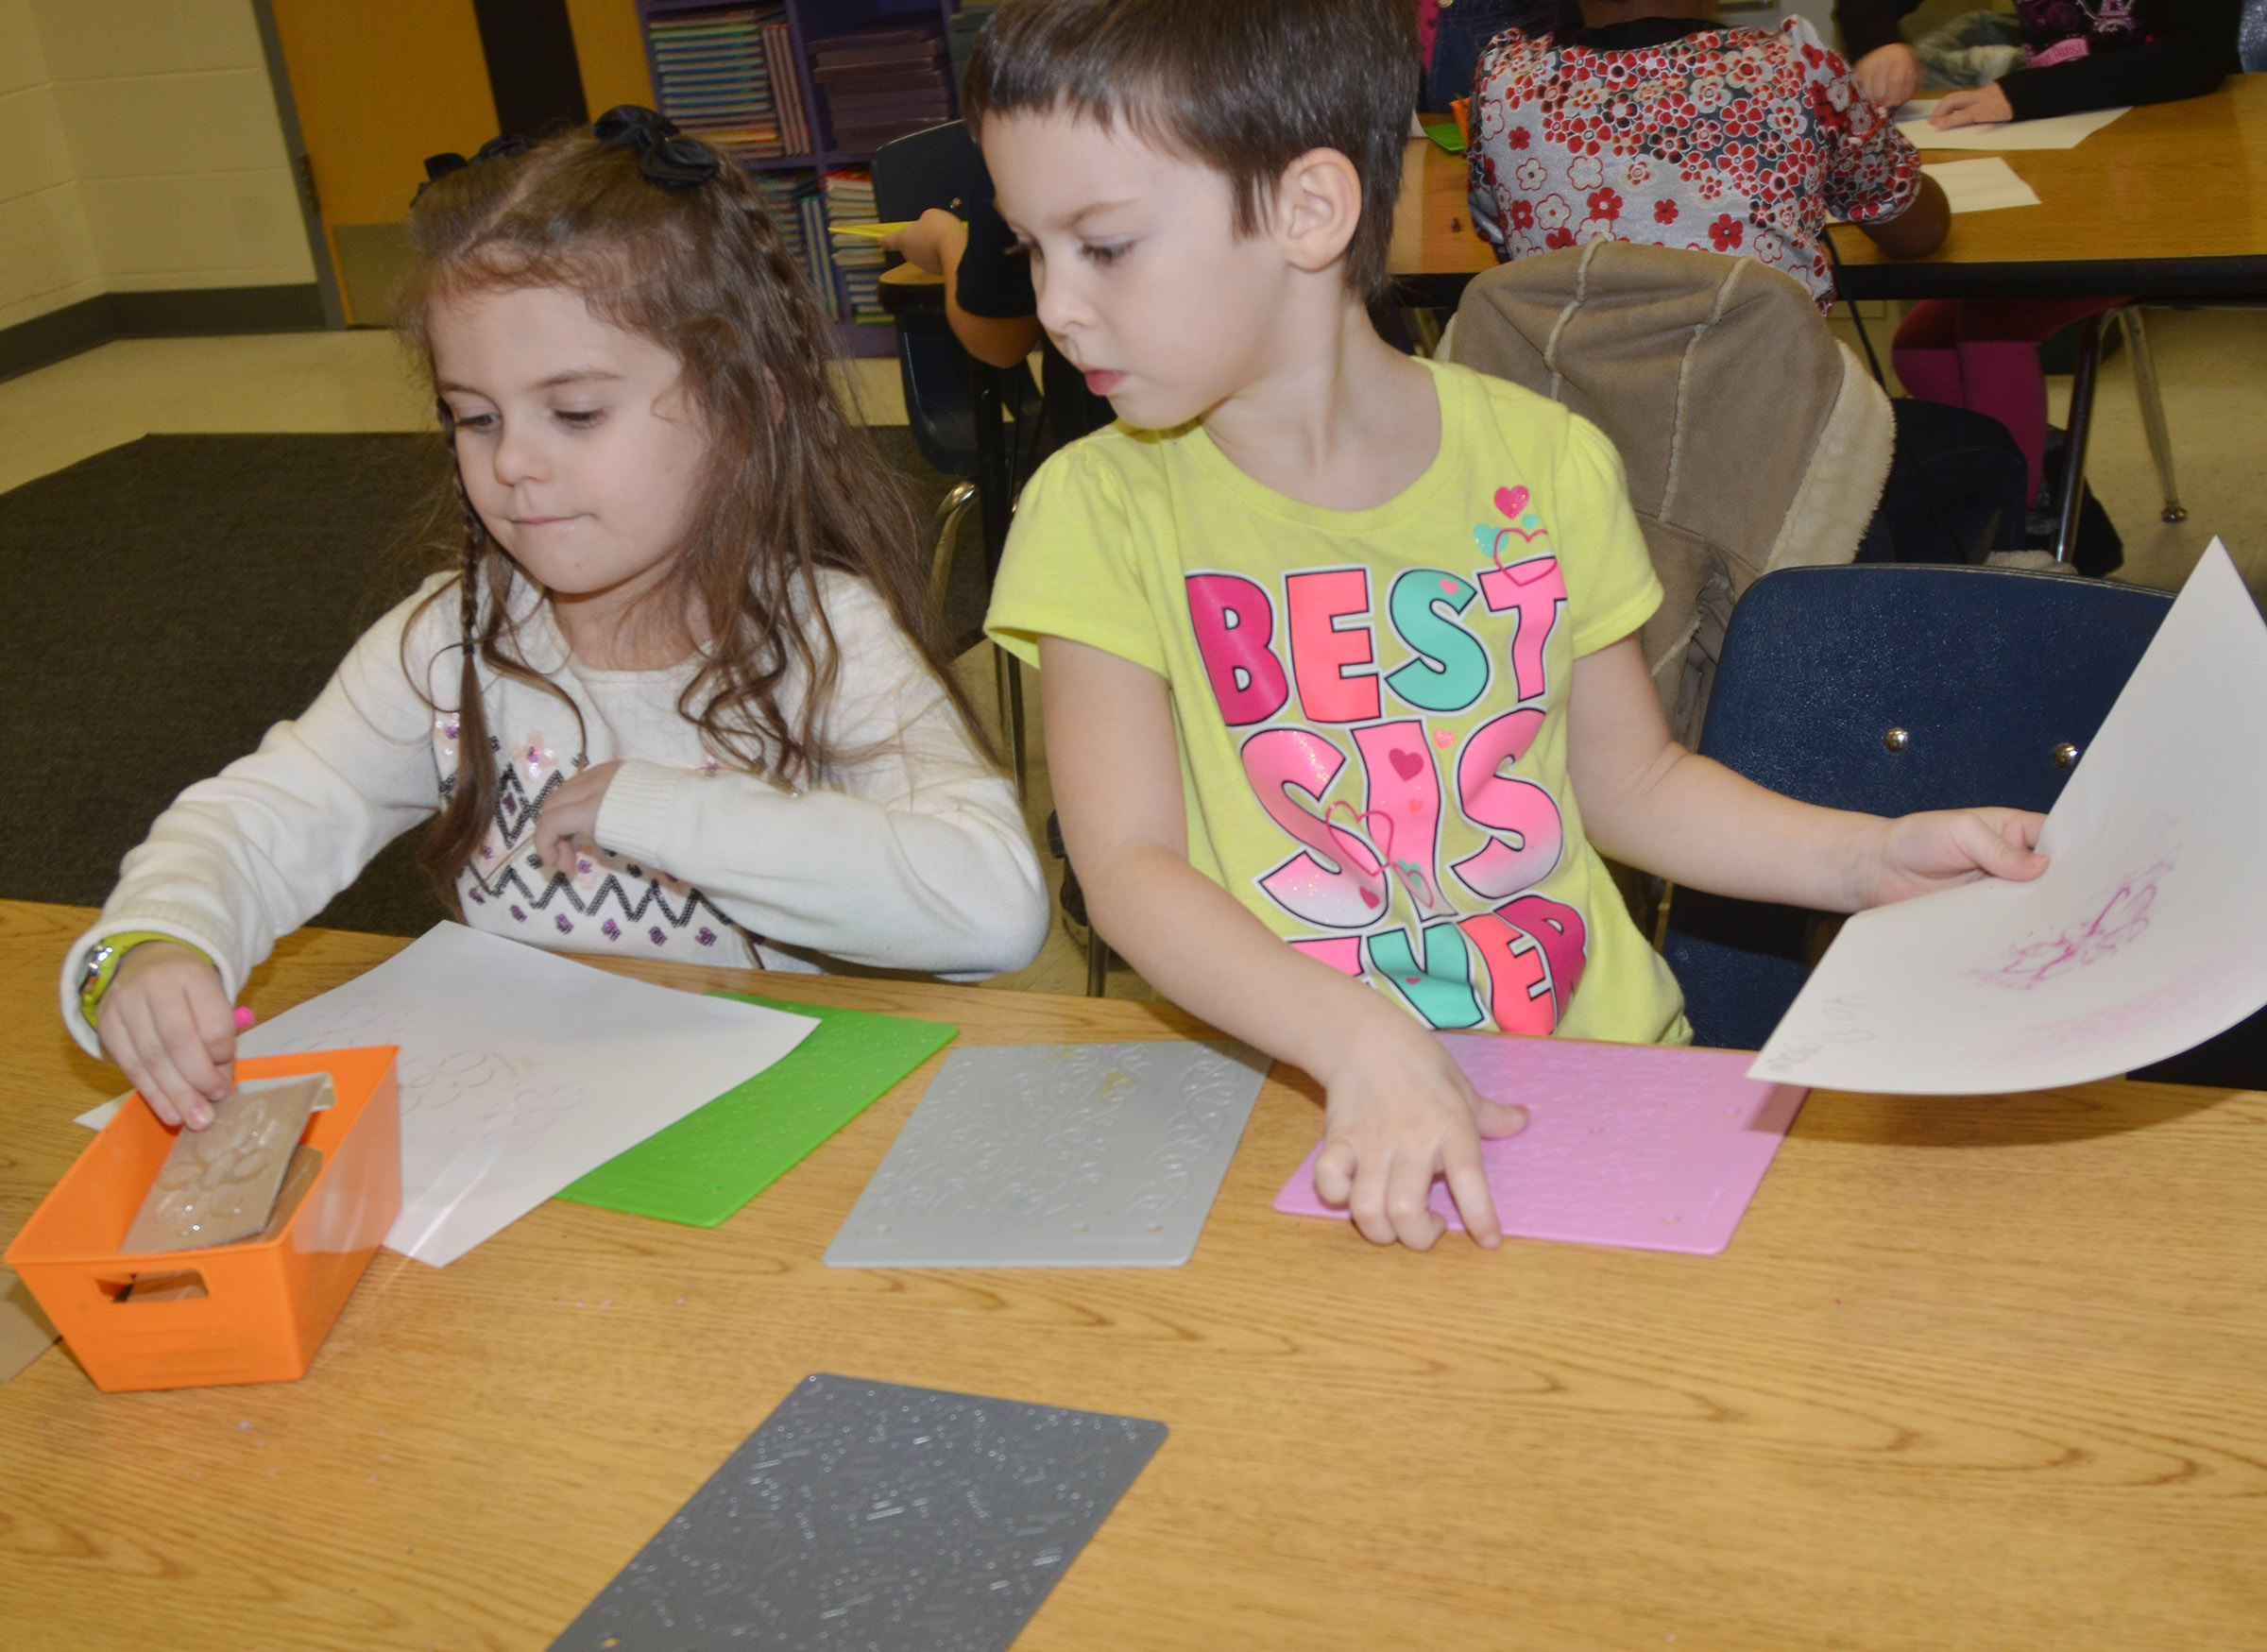 CES kindergarteners Addison Beckley, at left, and Madison Haywood rub patterns with crayons.